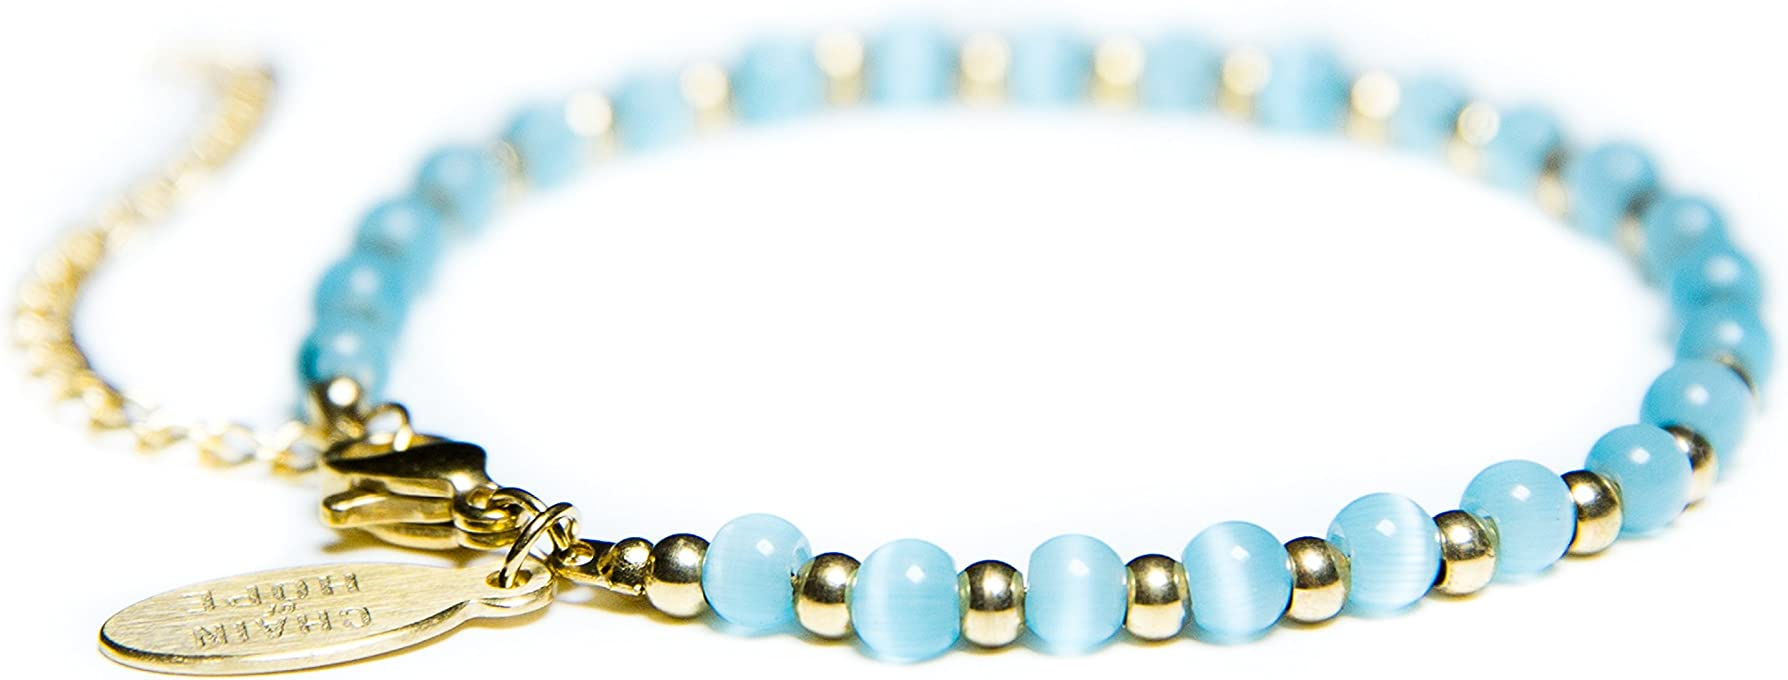 Beaded Bracelets for Women - Celebrity Endorsed 14k Gold Bracelets Turquoise Bracelet Bracelet Aqua Cat Eye Charm Fashionable Handmade Crystal Jewelry for Giving Back